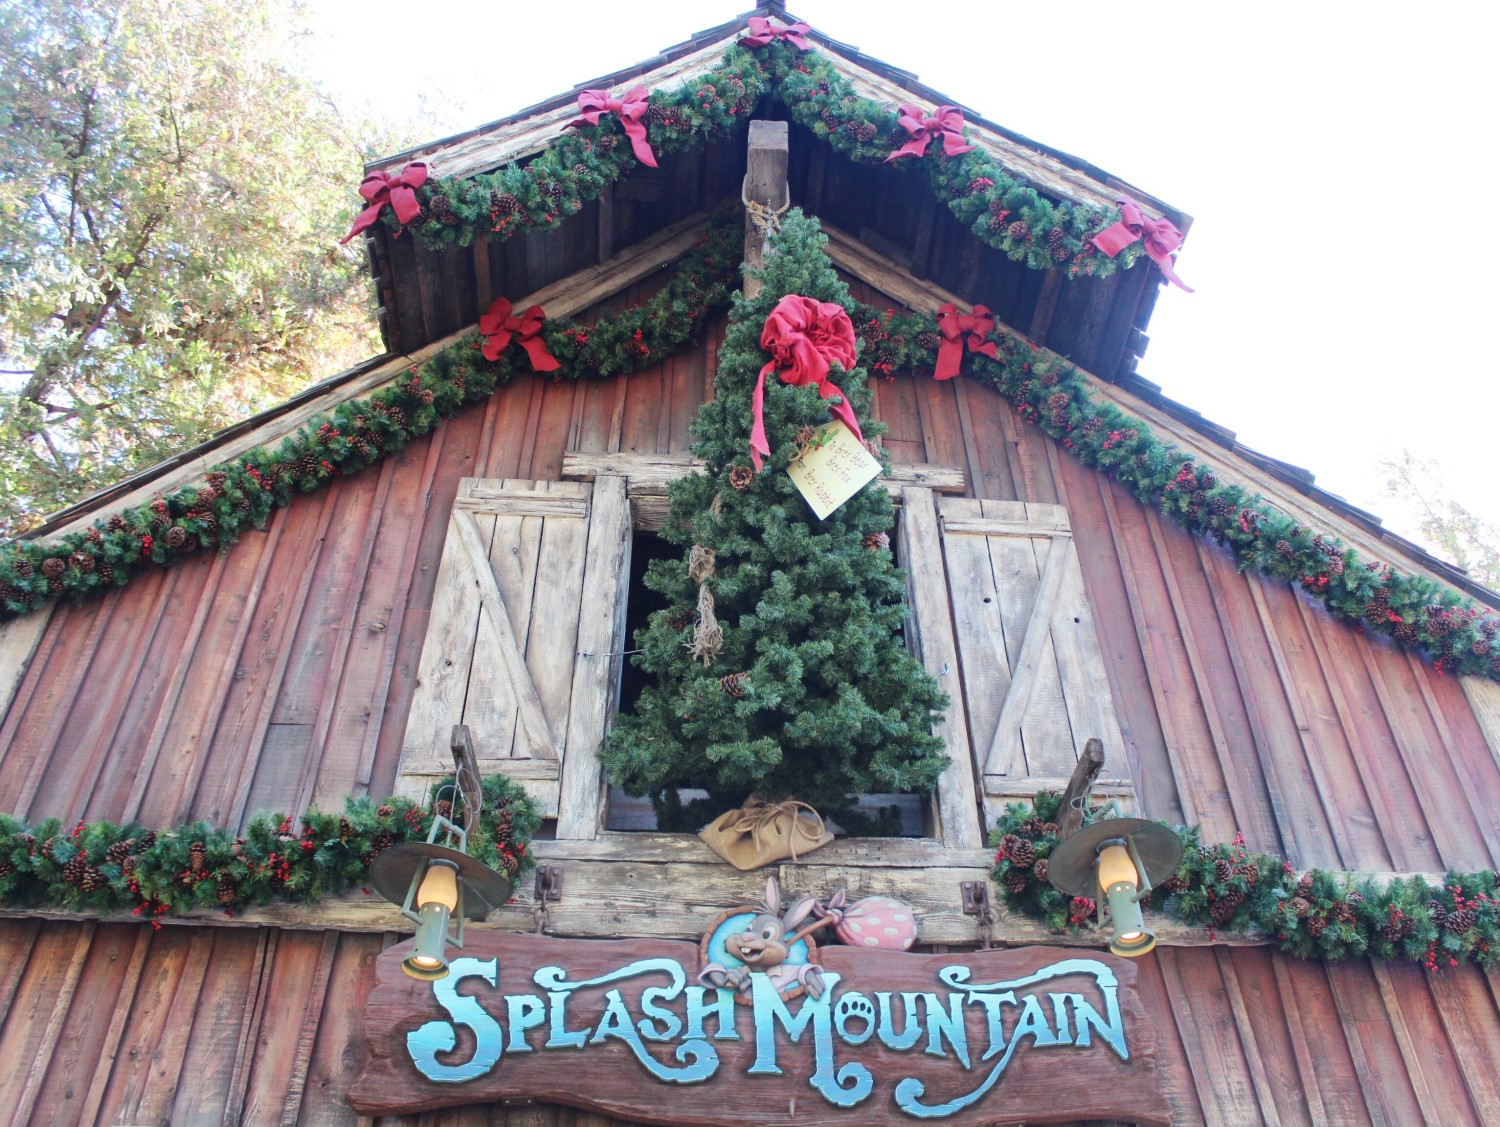 Disneyland Splash Mountain In December